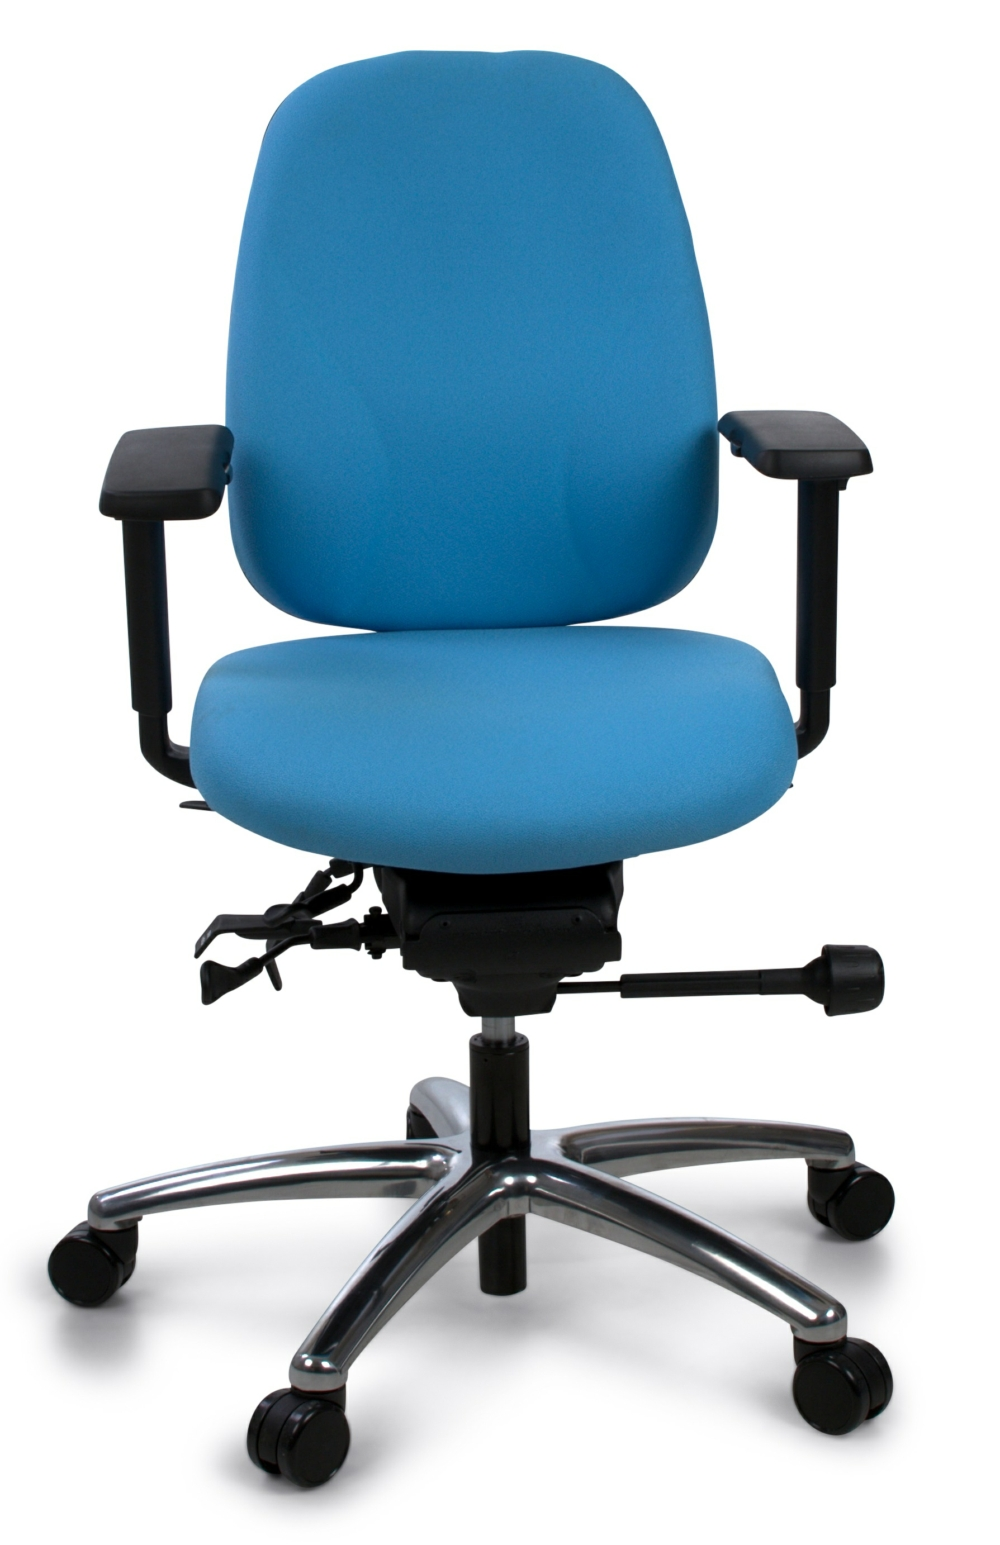 ergonomic office chairs. Ergonomic Office Chairs